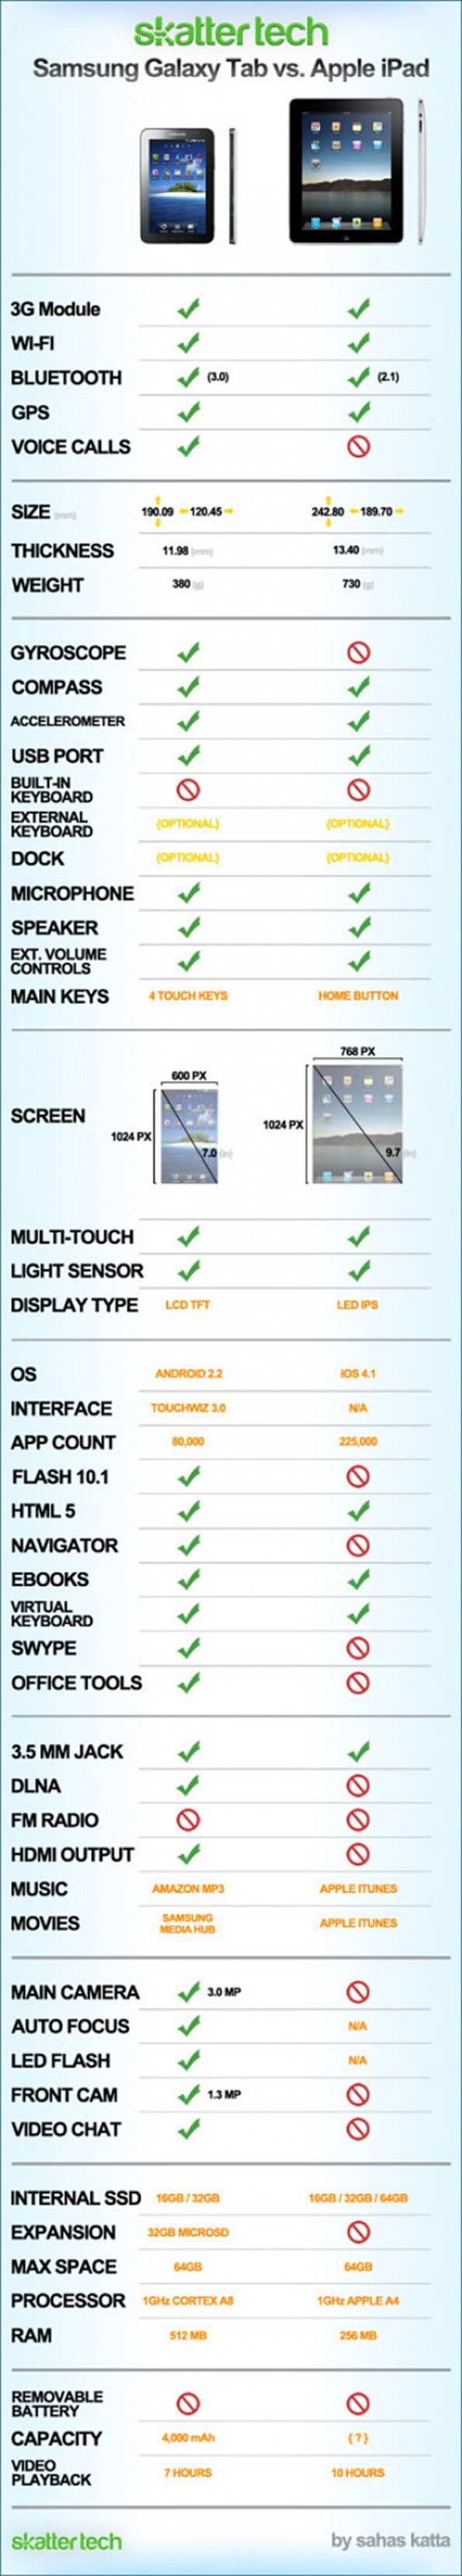 Samsung Galaxy Tab vs. Apple iPad Infographic